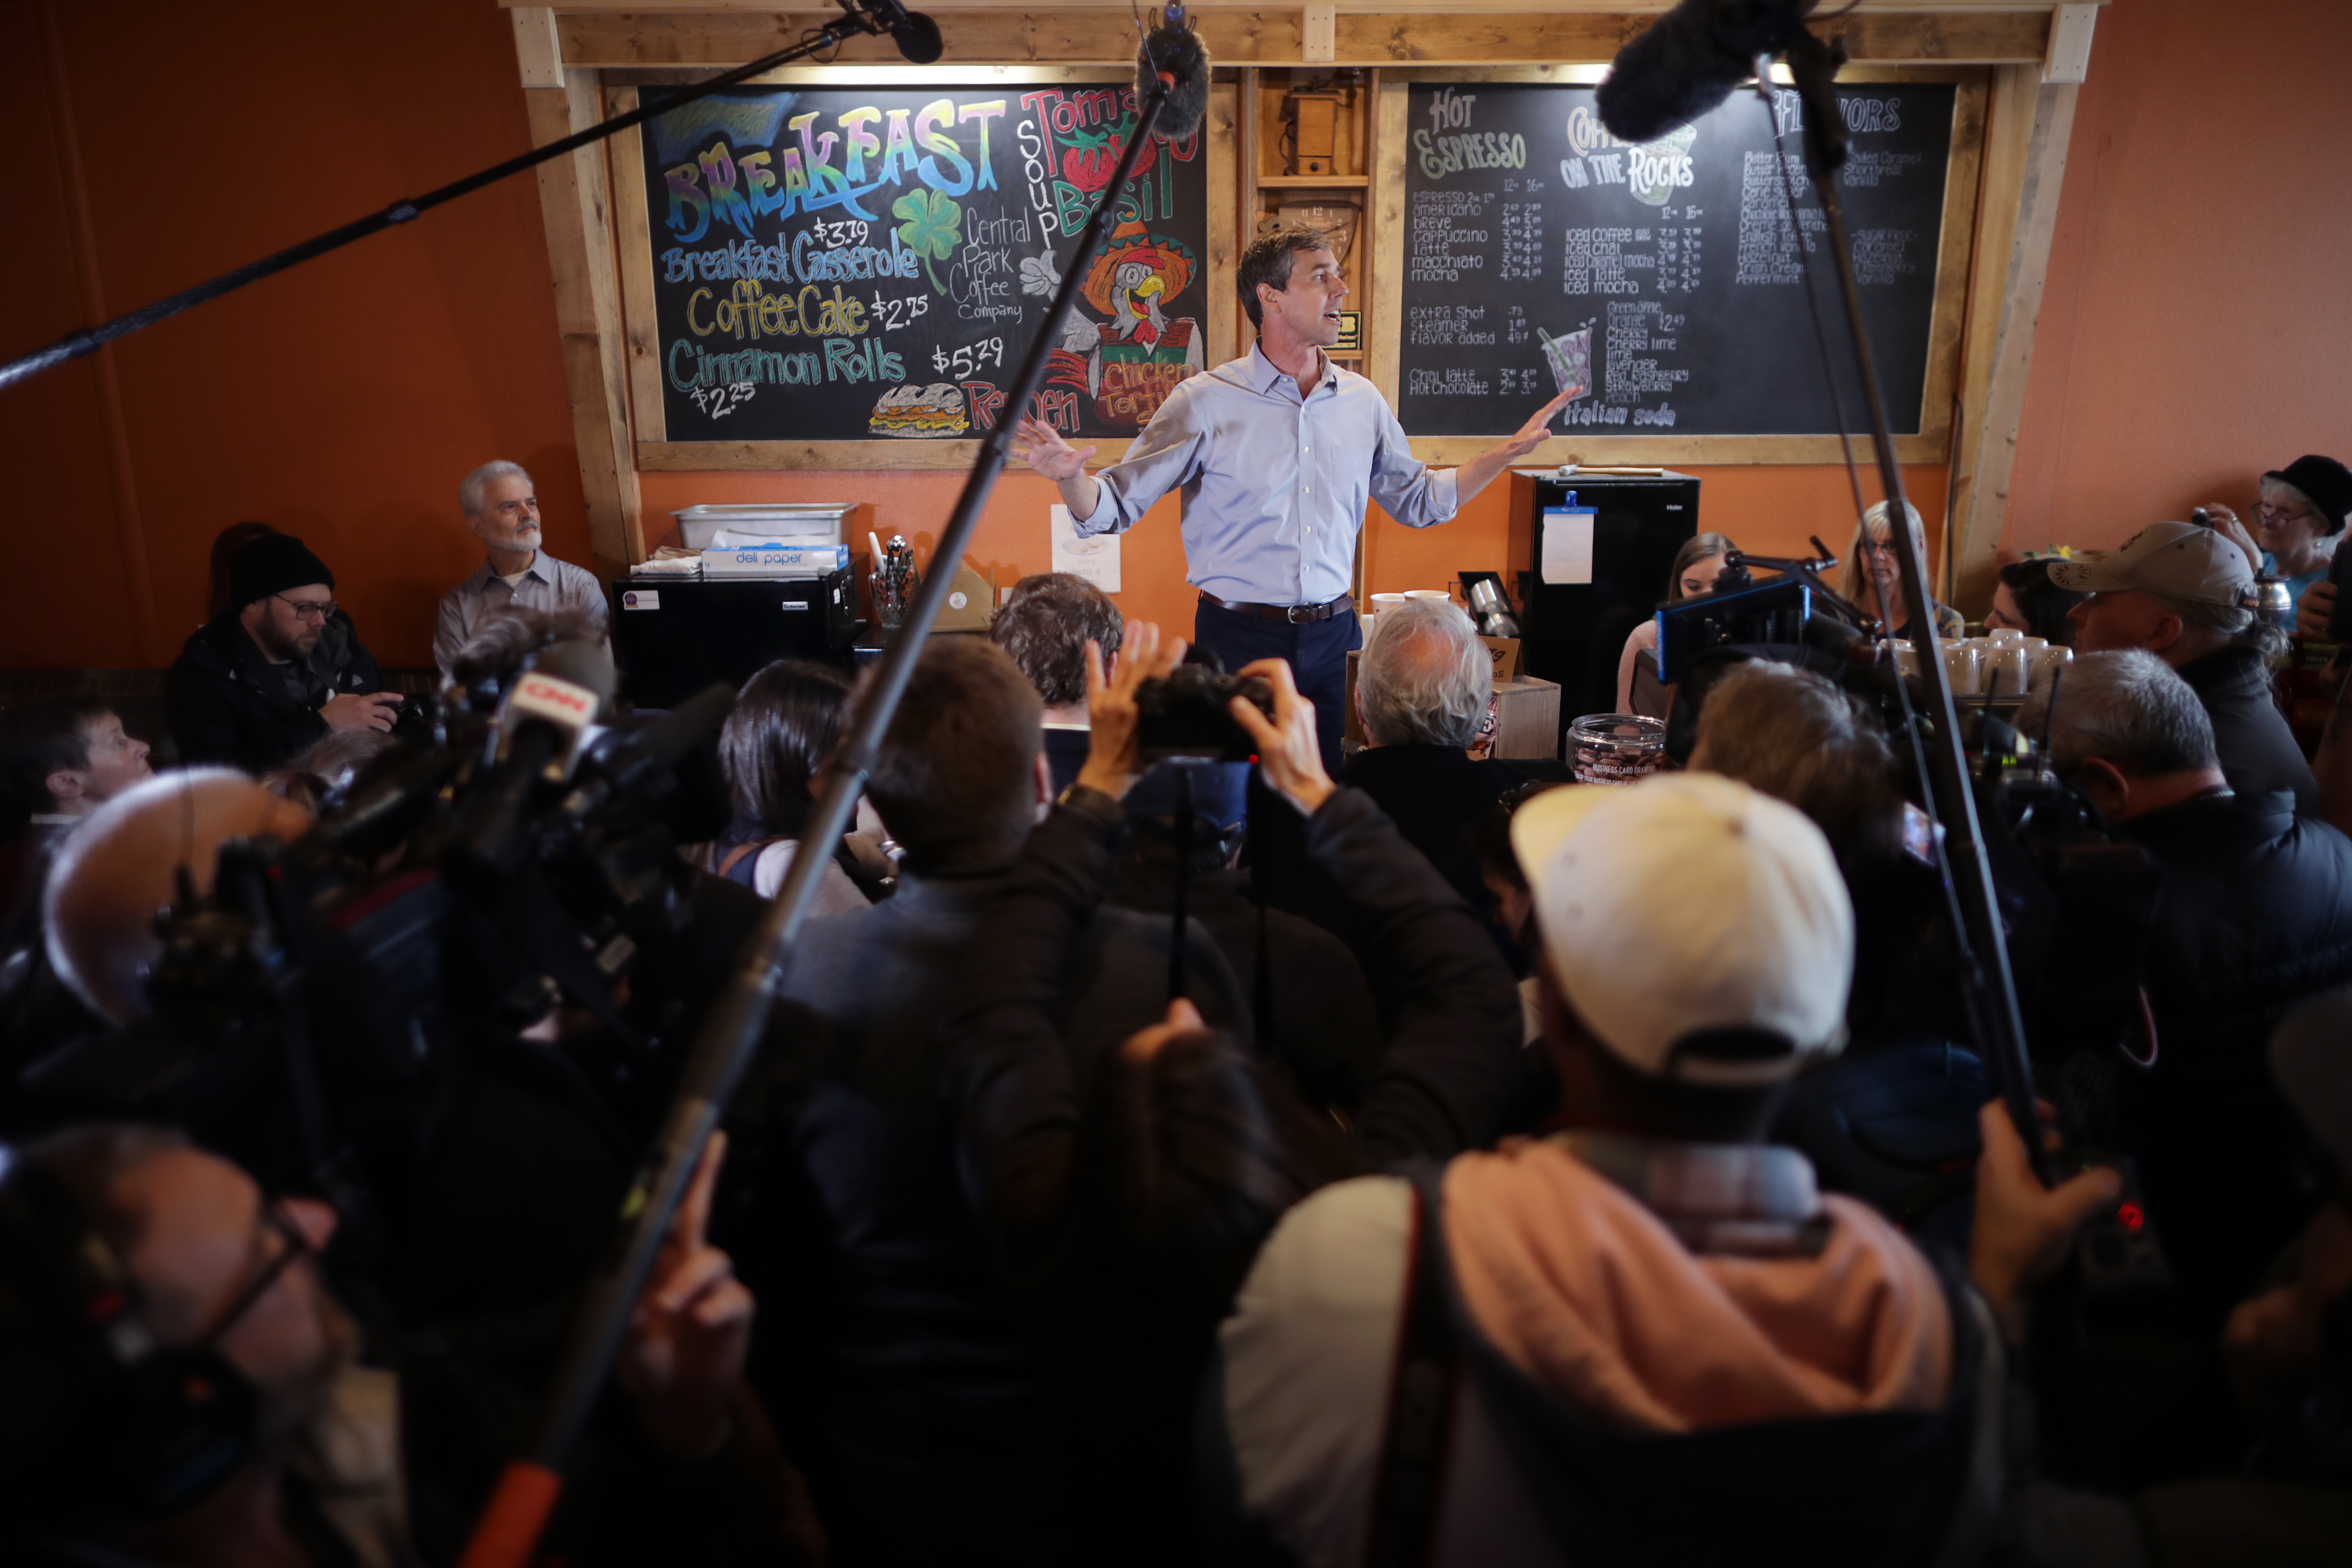 MOUNT PLEASANT, IOWA - MARCH 15: Democratic presidential candidate Beto O'Rourke stands on a counter top as he talks with voters during his second day of campaigning for the 2020 nomination at Central Park Coffee Company March 15, 2019 in Mount Pleasant, Iowa. After losing a long-shot race for U.S. Senate to Ted Cruz (R-TX), the 46-year-old O'Rourke is making his first campaign swing through Iowa after jumping into a crowded Democratic field this week. (Photo by Chip Somodevilla/Getty Images)